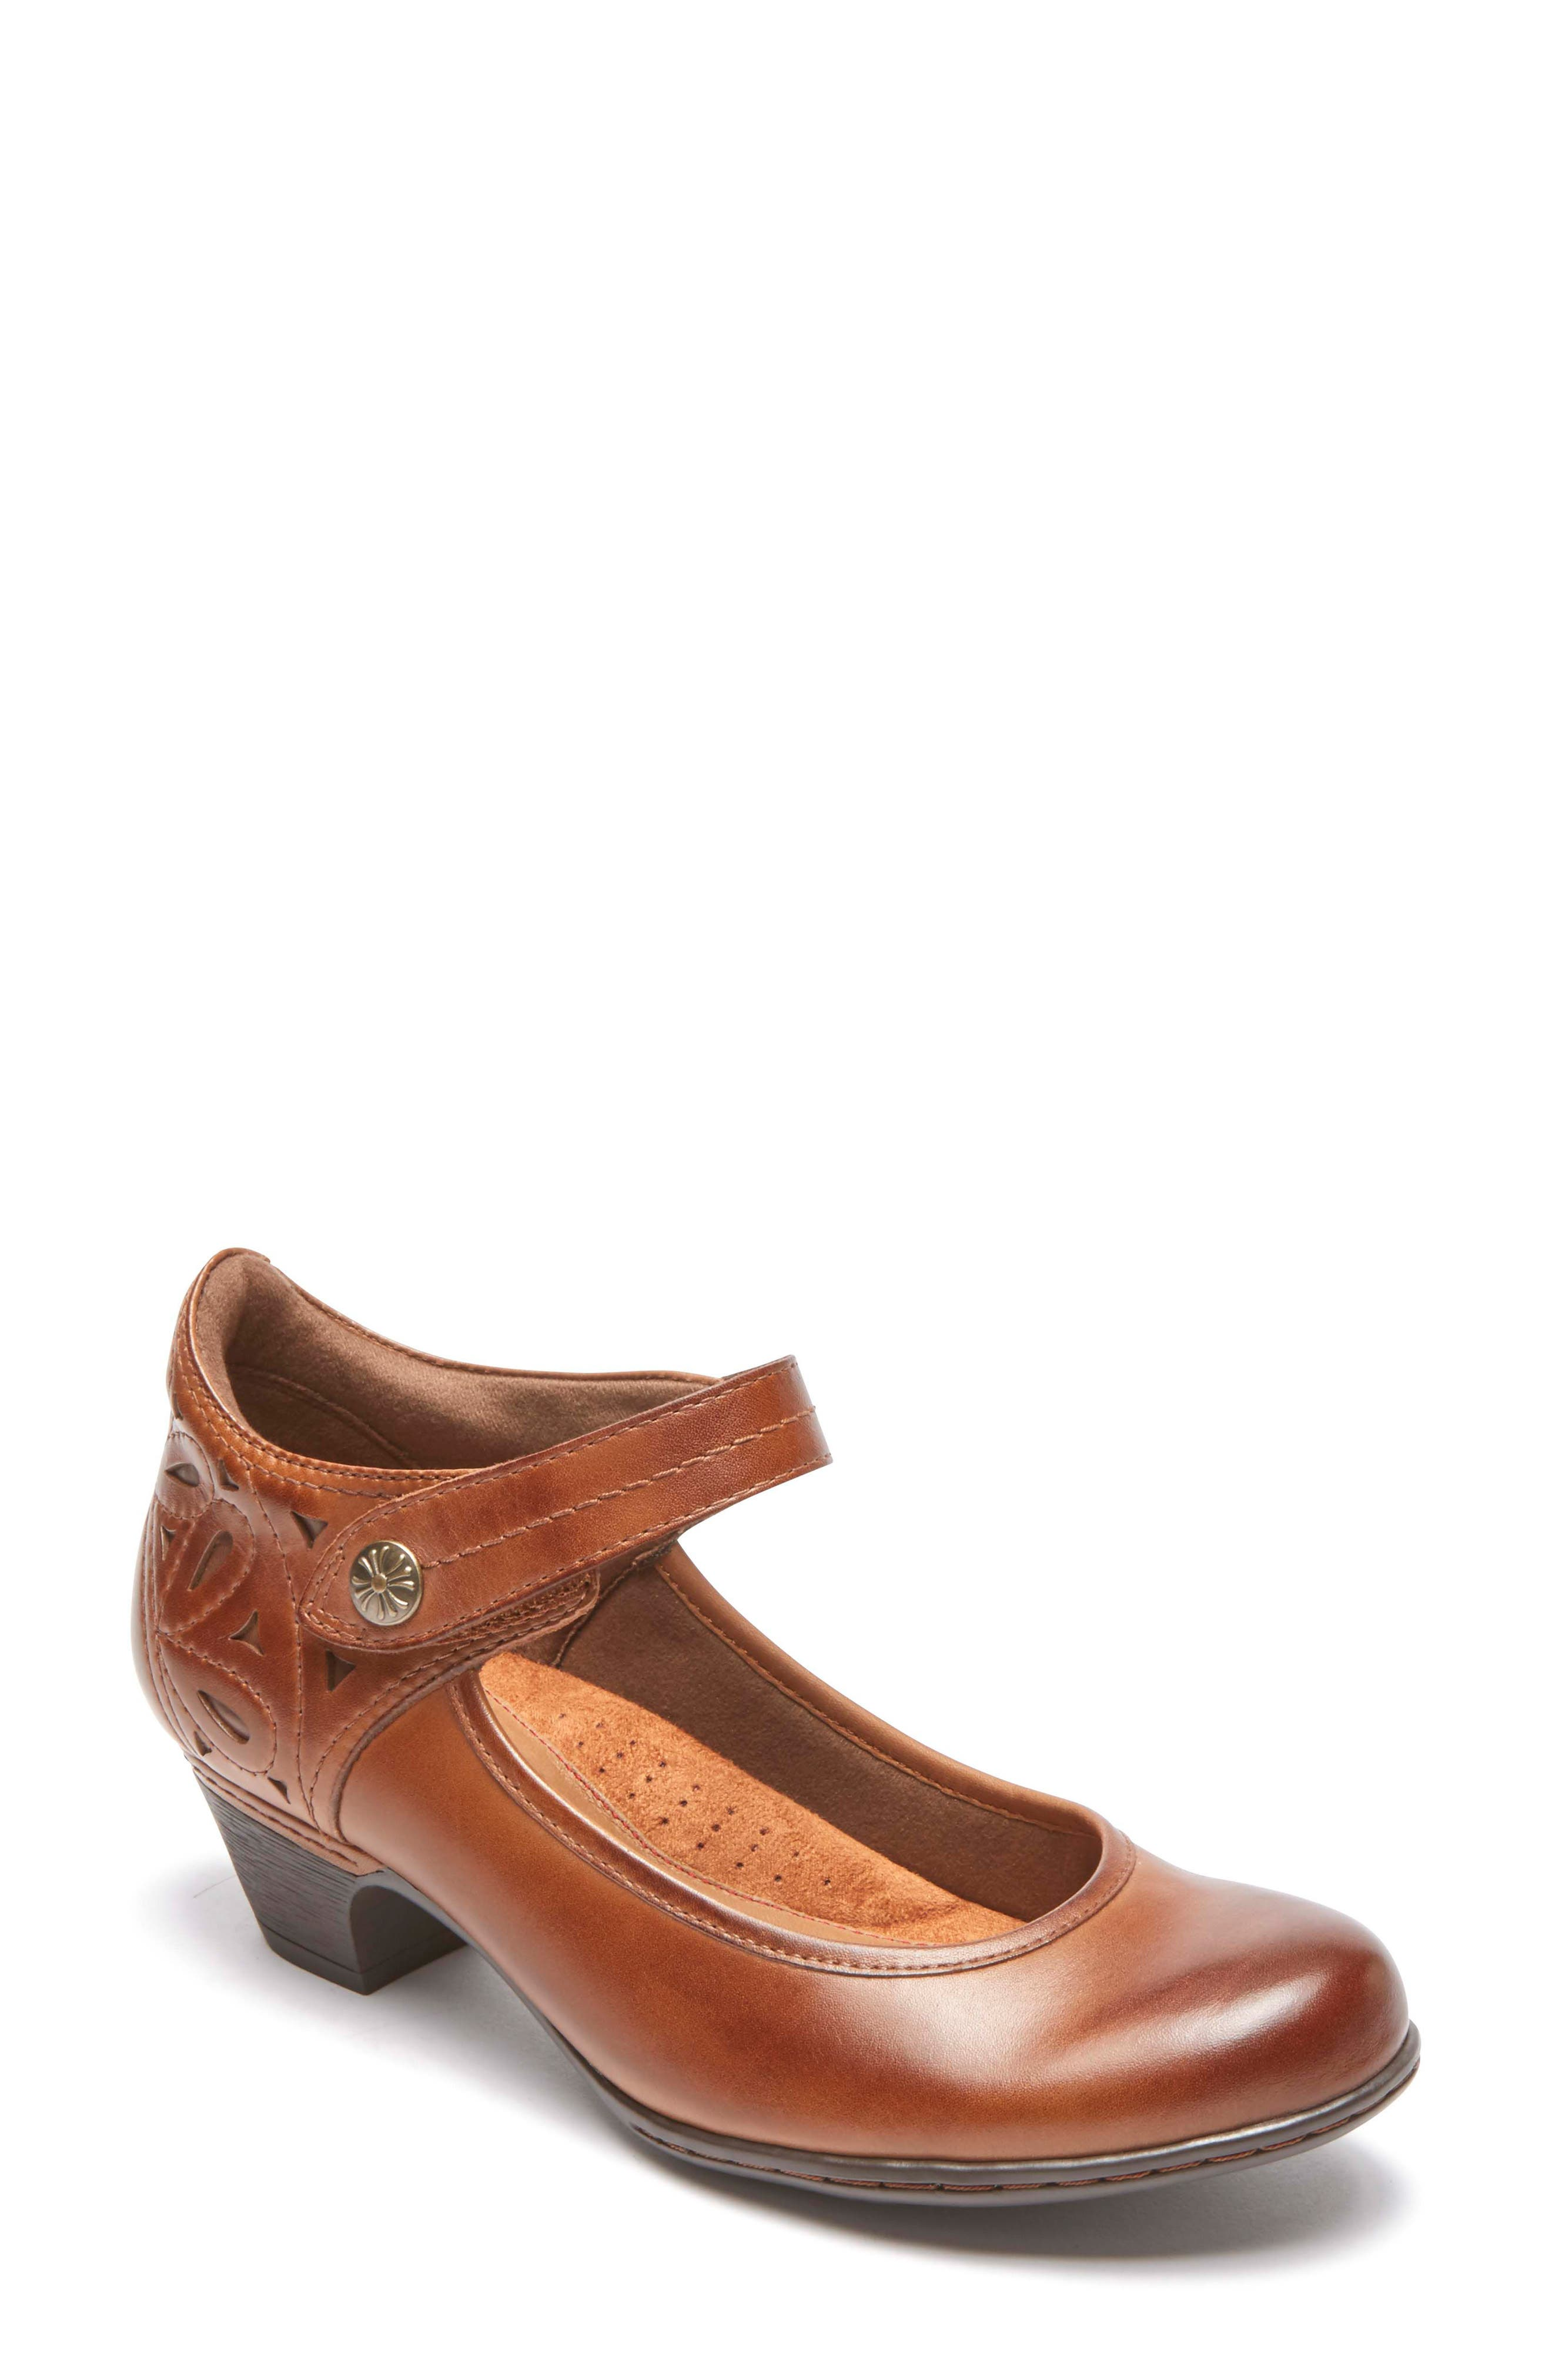 Abbott Mary Jane Pump,                         Main,                         color, ALMOND LEATHER